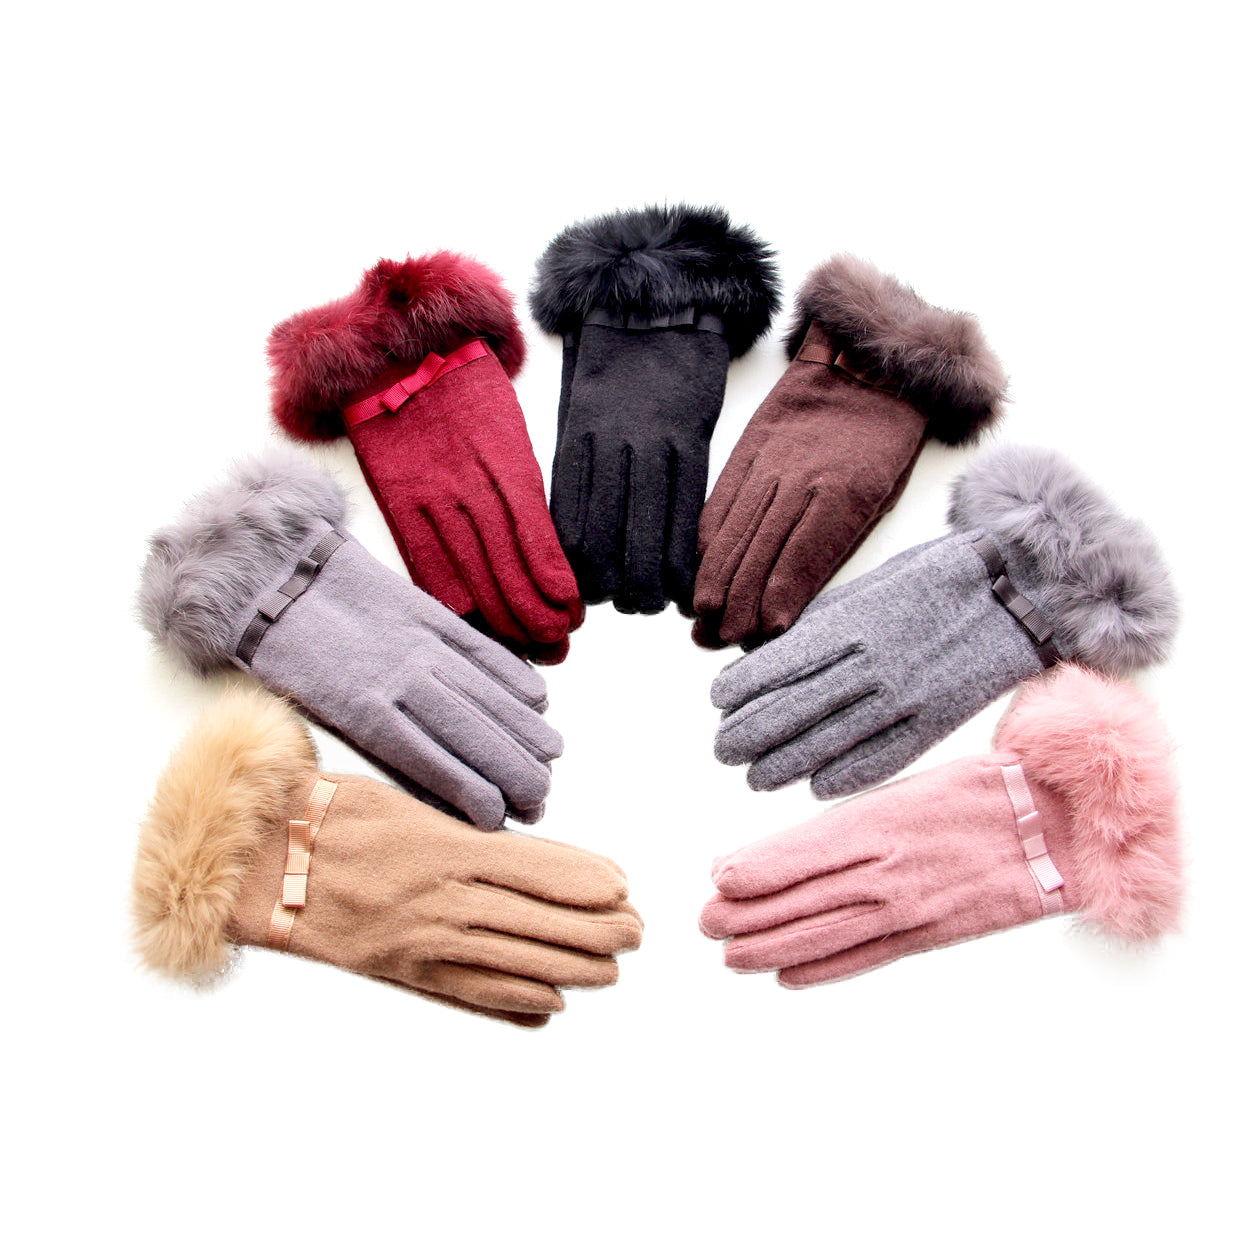 shopify-Kitten Mittens Faux Fur Lining Touch Smart Gloves-1